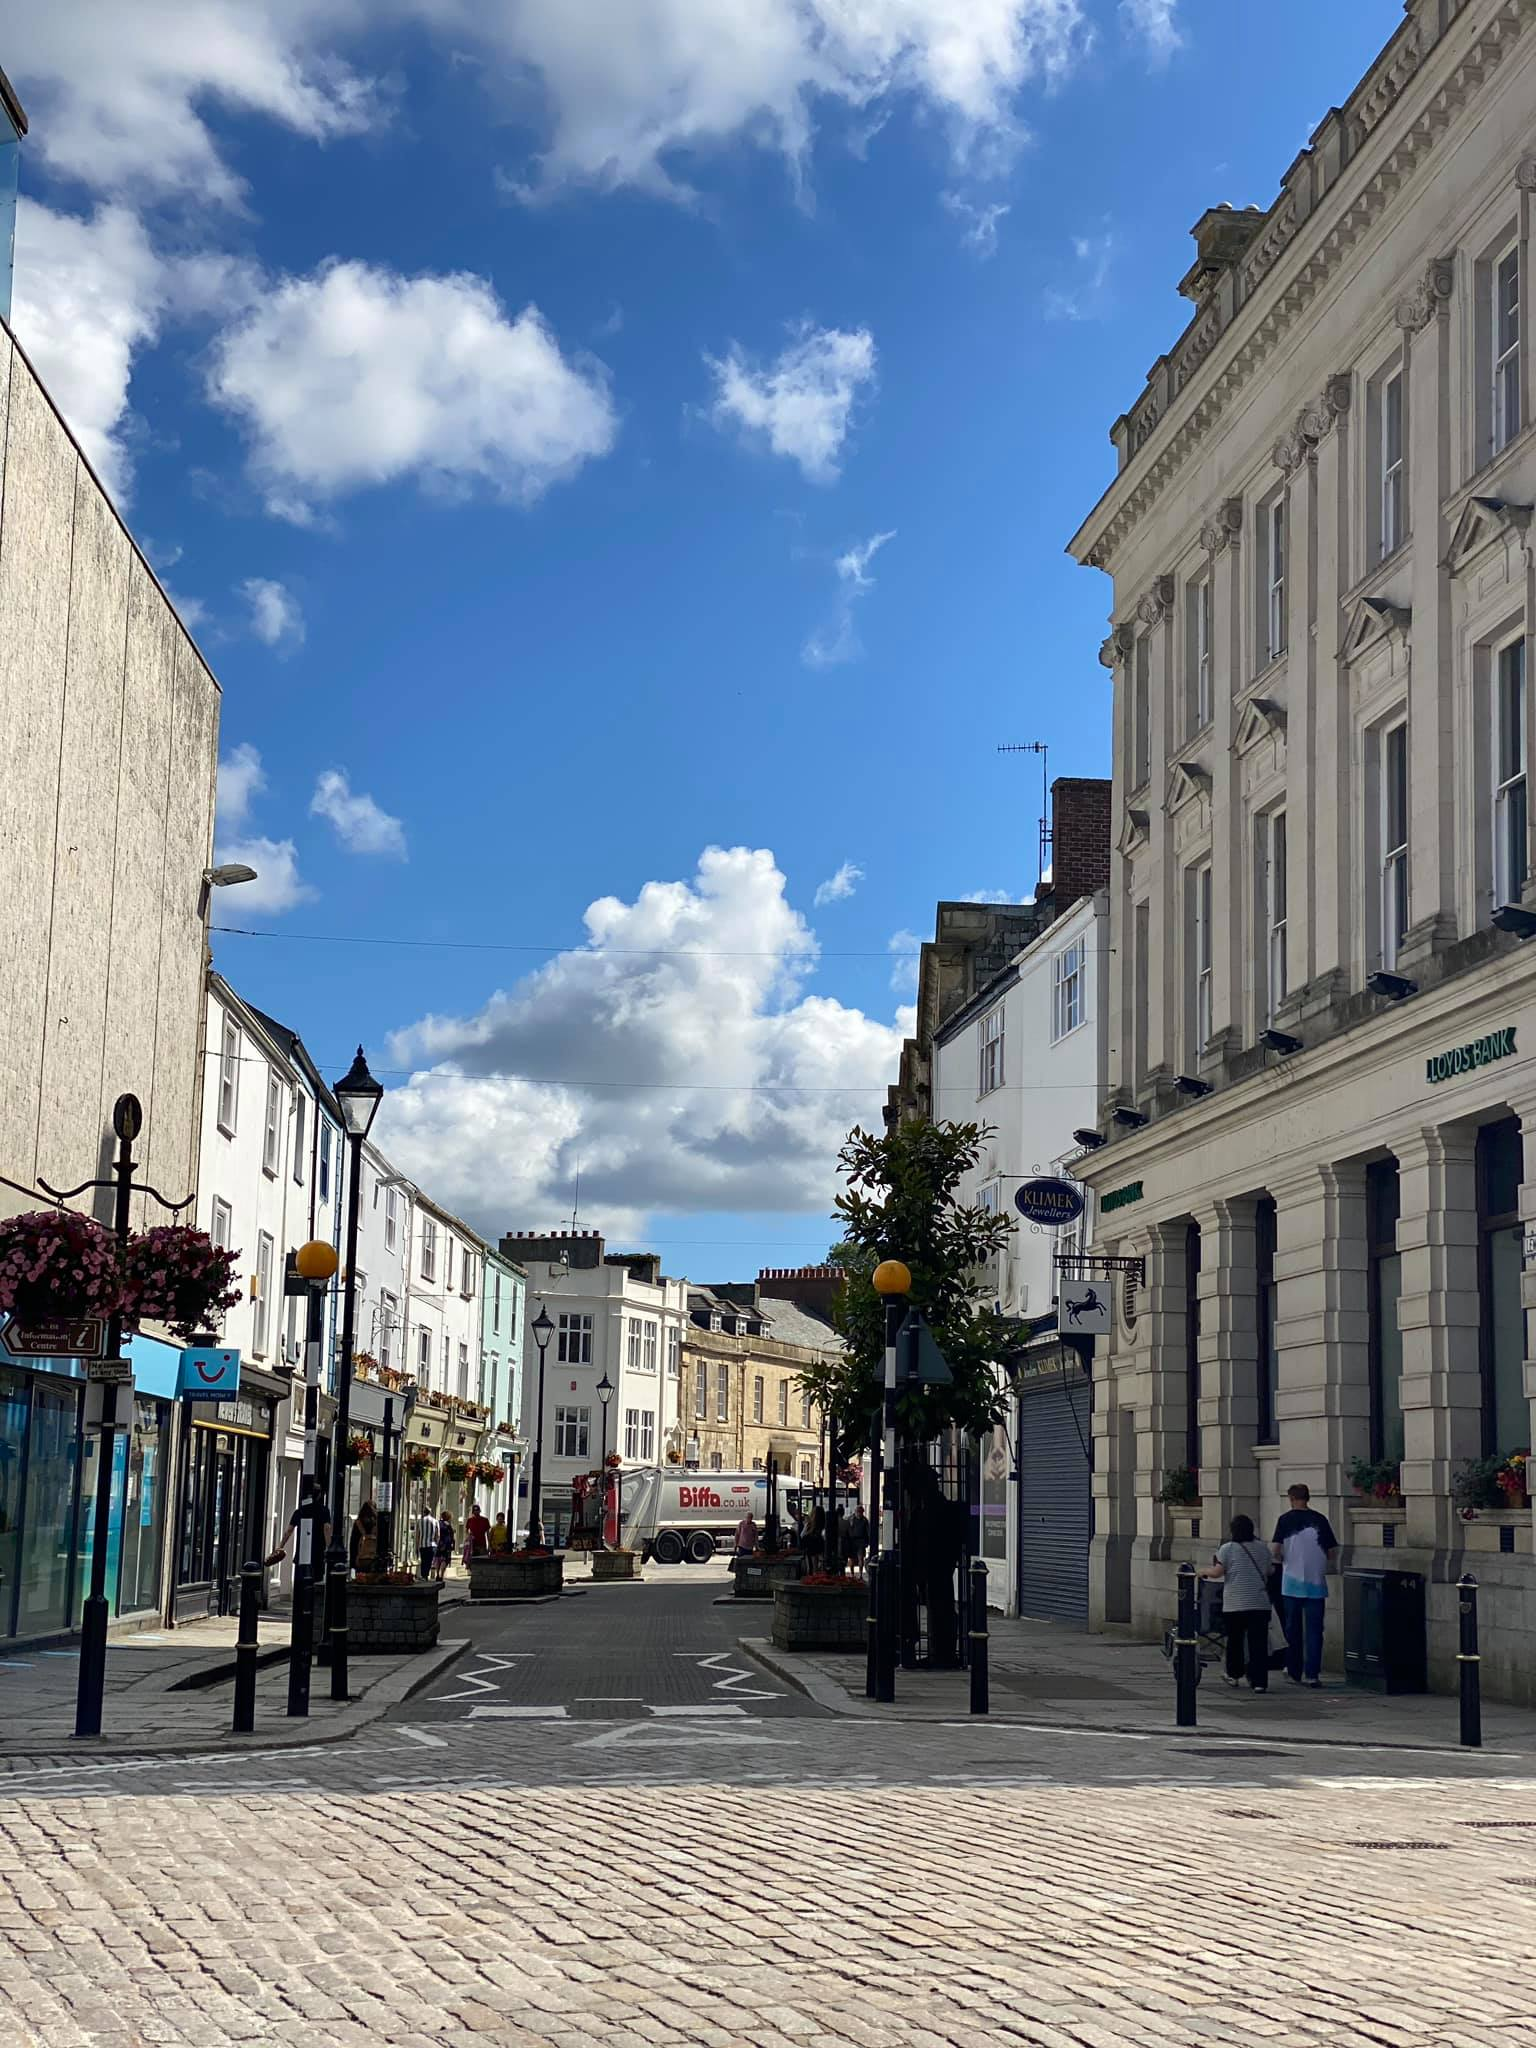 Truro highstreet, not many people in the photo.